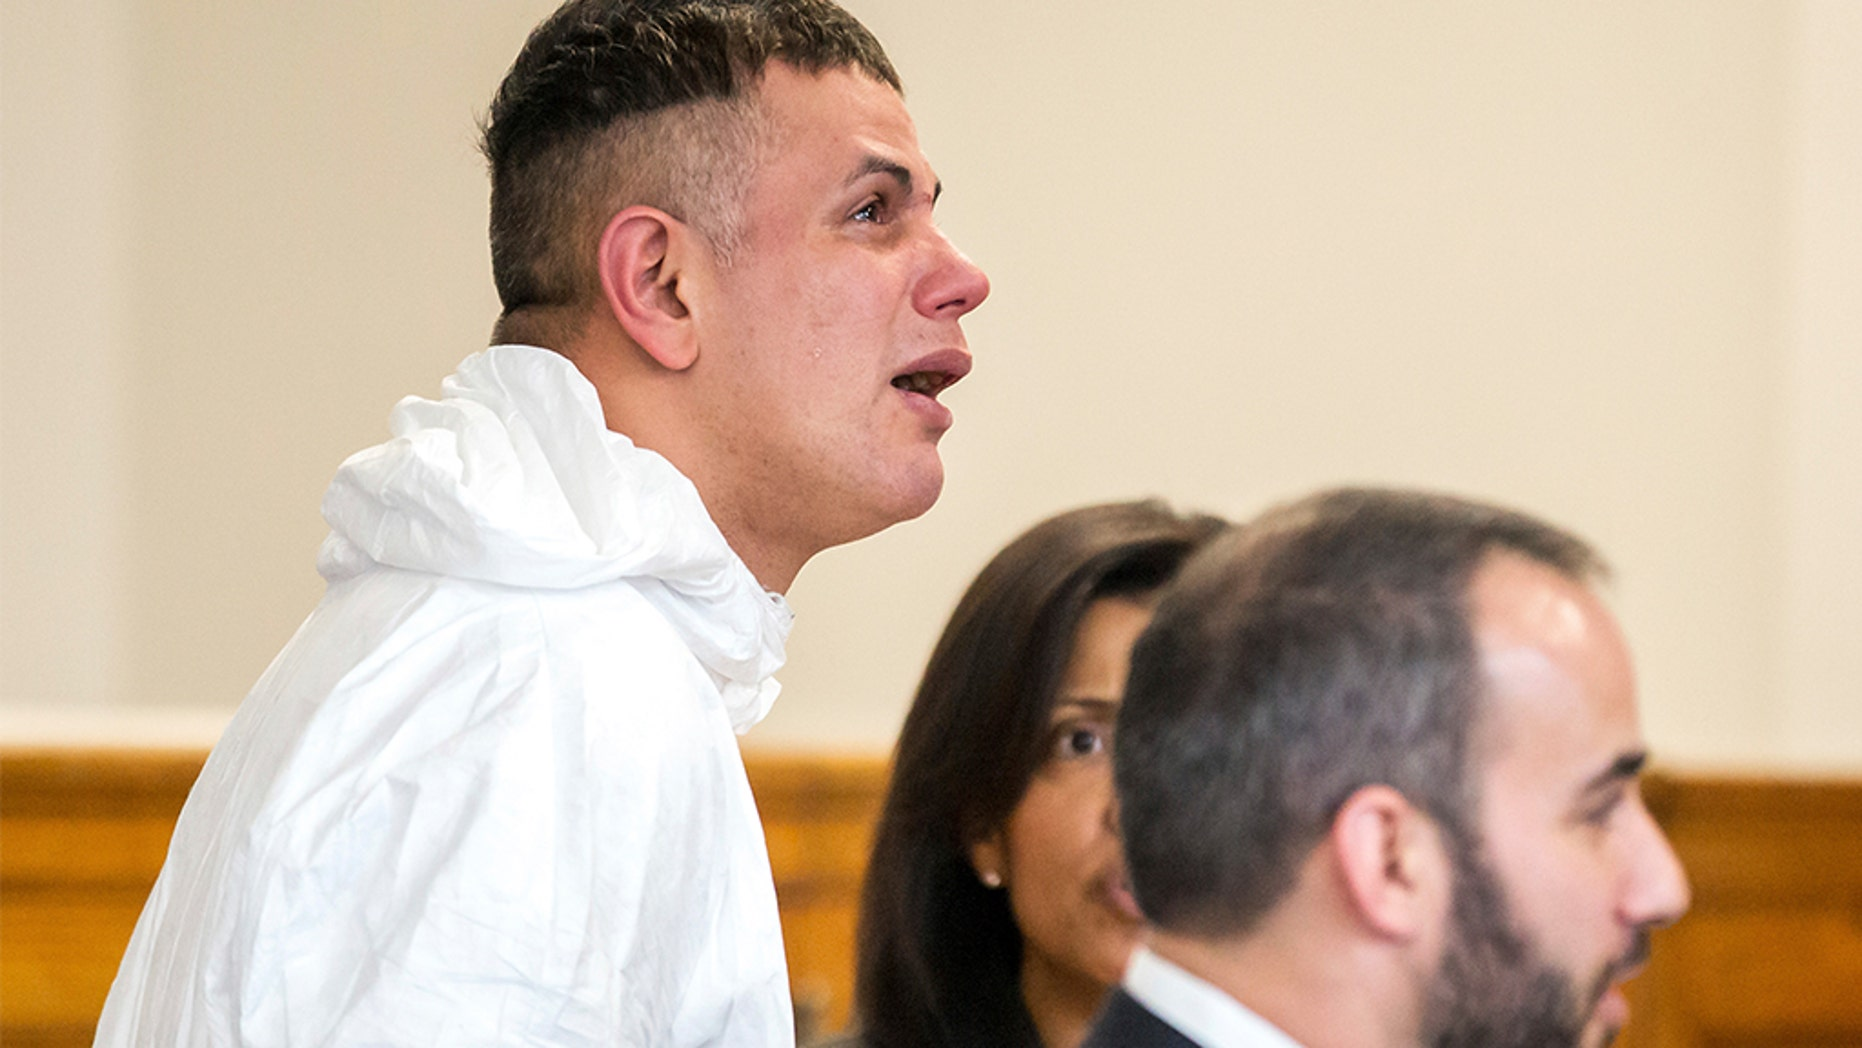 Victor Pena, left, is arraigned on kidnapping charges at the Charlestown Division of the Boston Municipal Court in Charlestown, Massachusetts on Jan. 23.